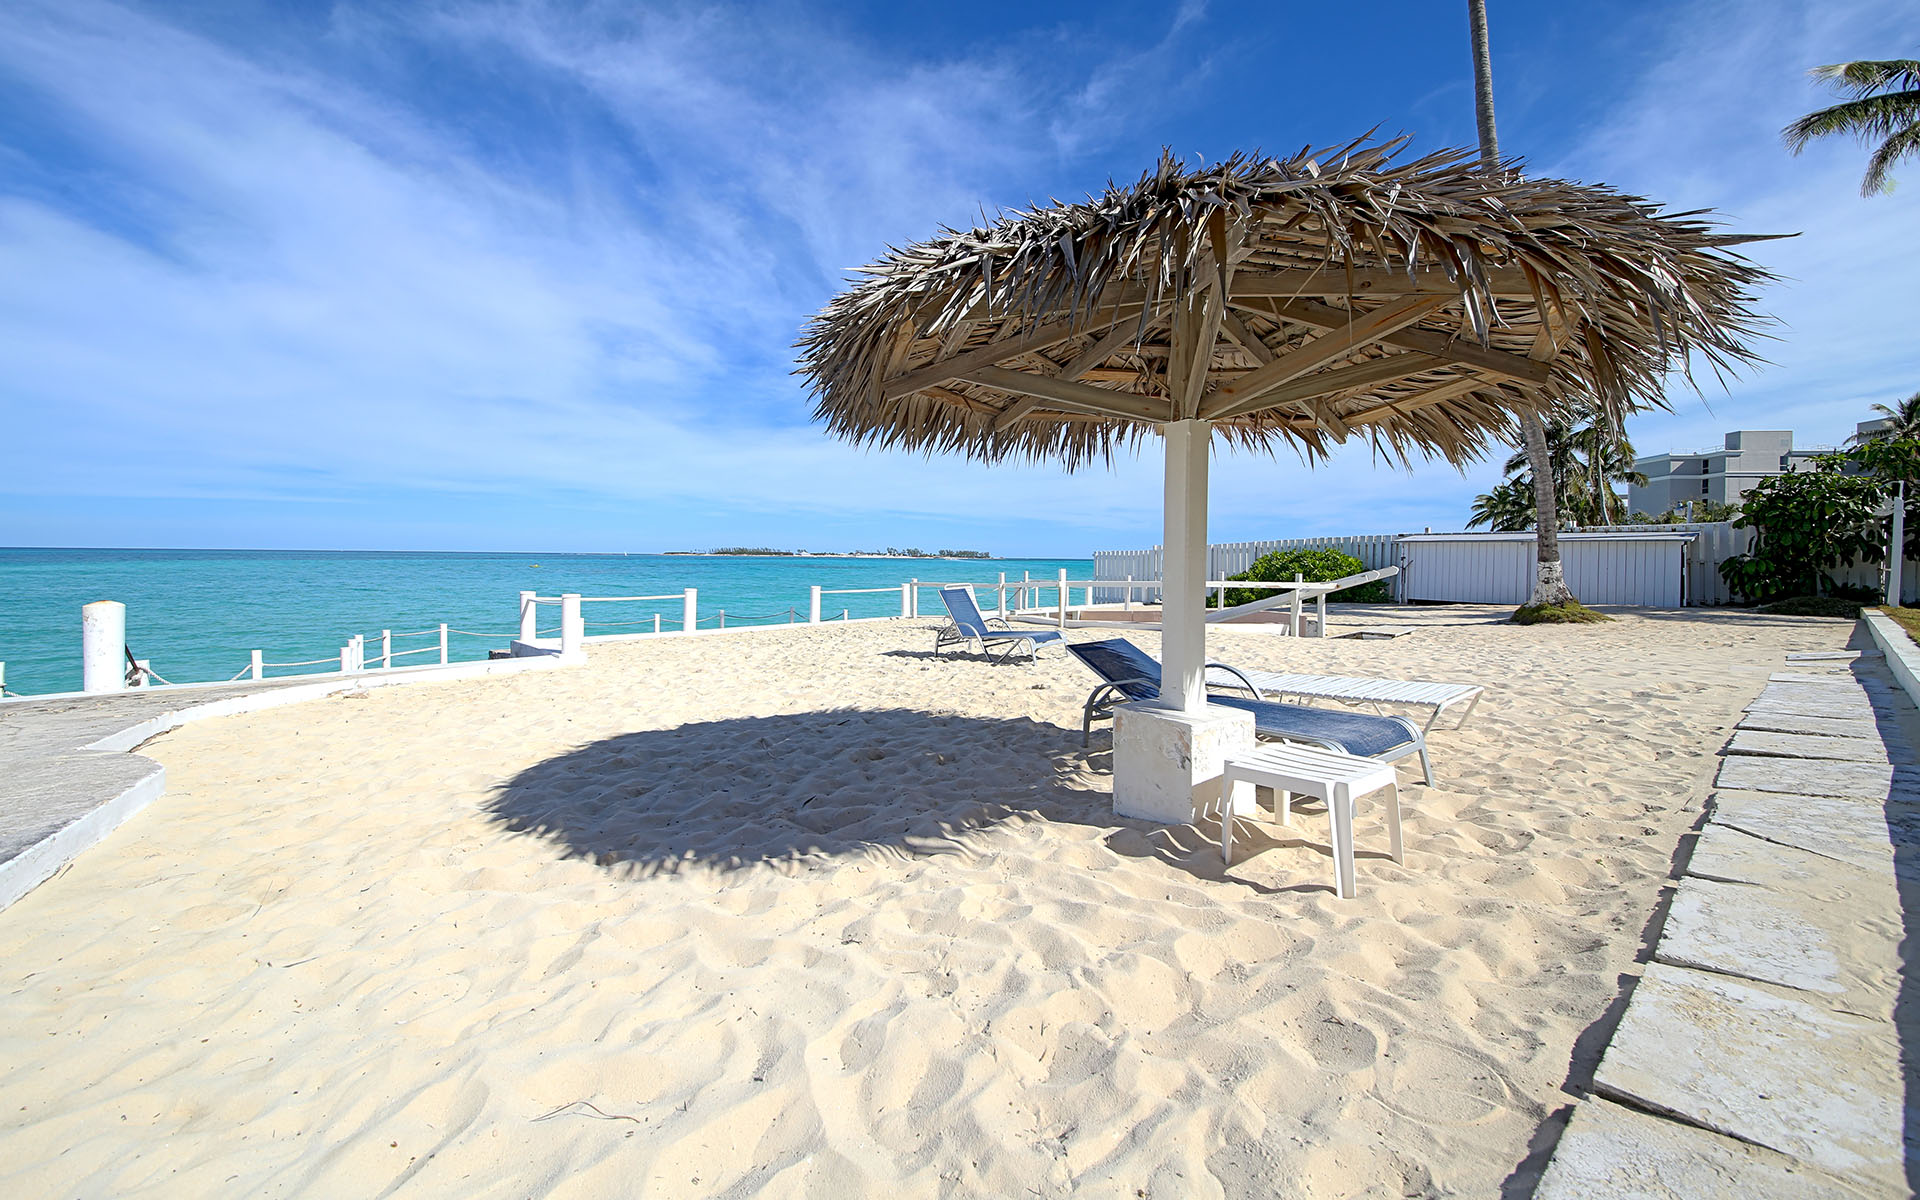 Co-op / Condo for Sale at Beachfront condo in the heart of Cable Beach -MLS 28972 Cable Beach, Nassau And Paradise Island, Bahamas